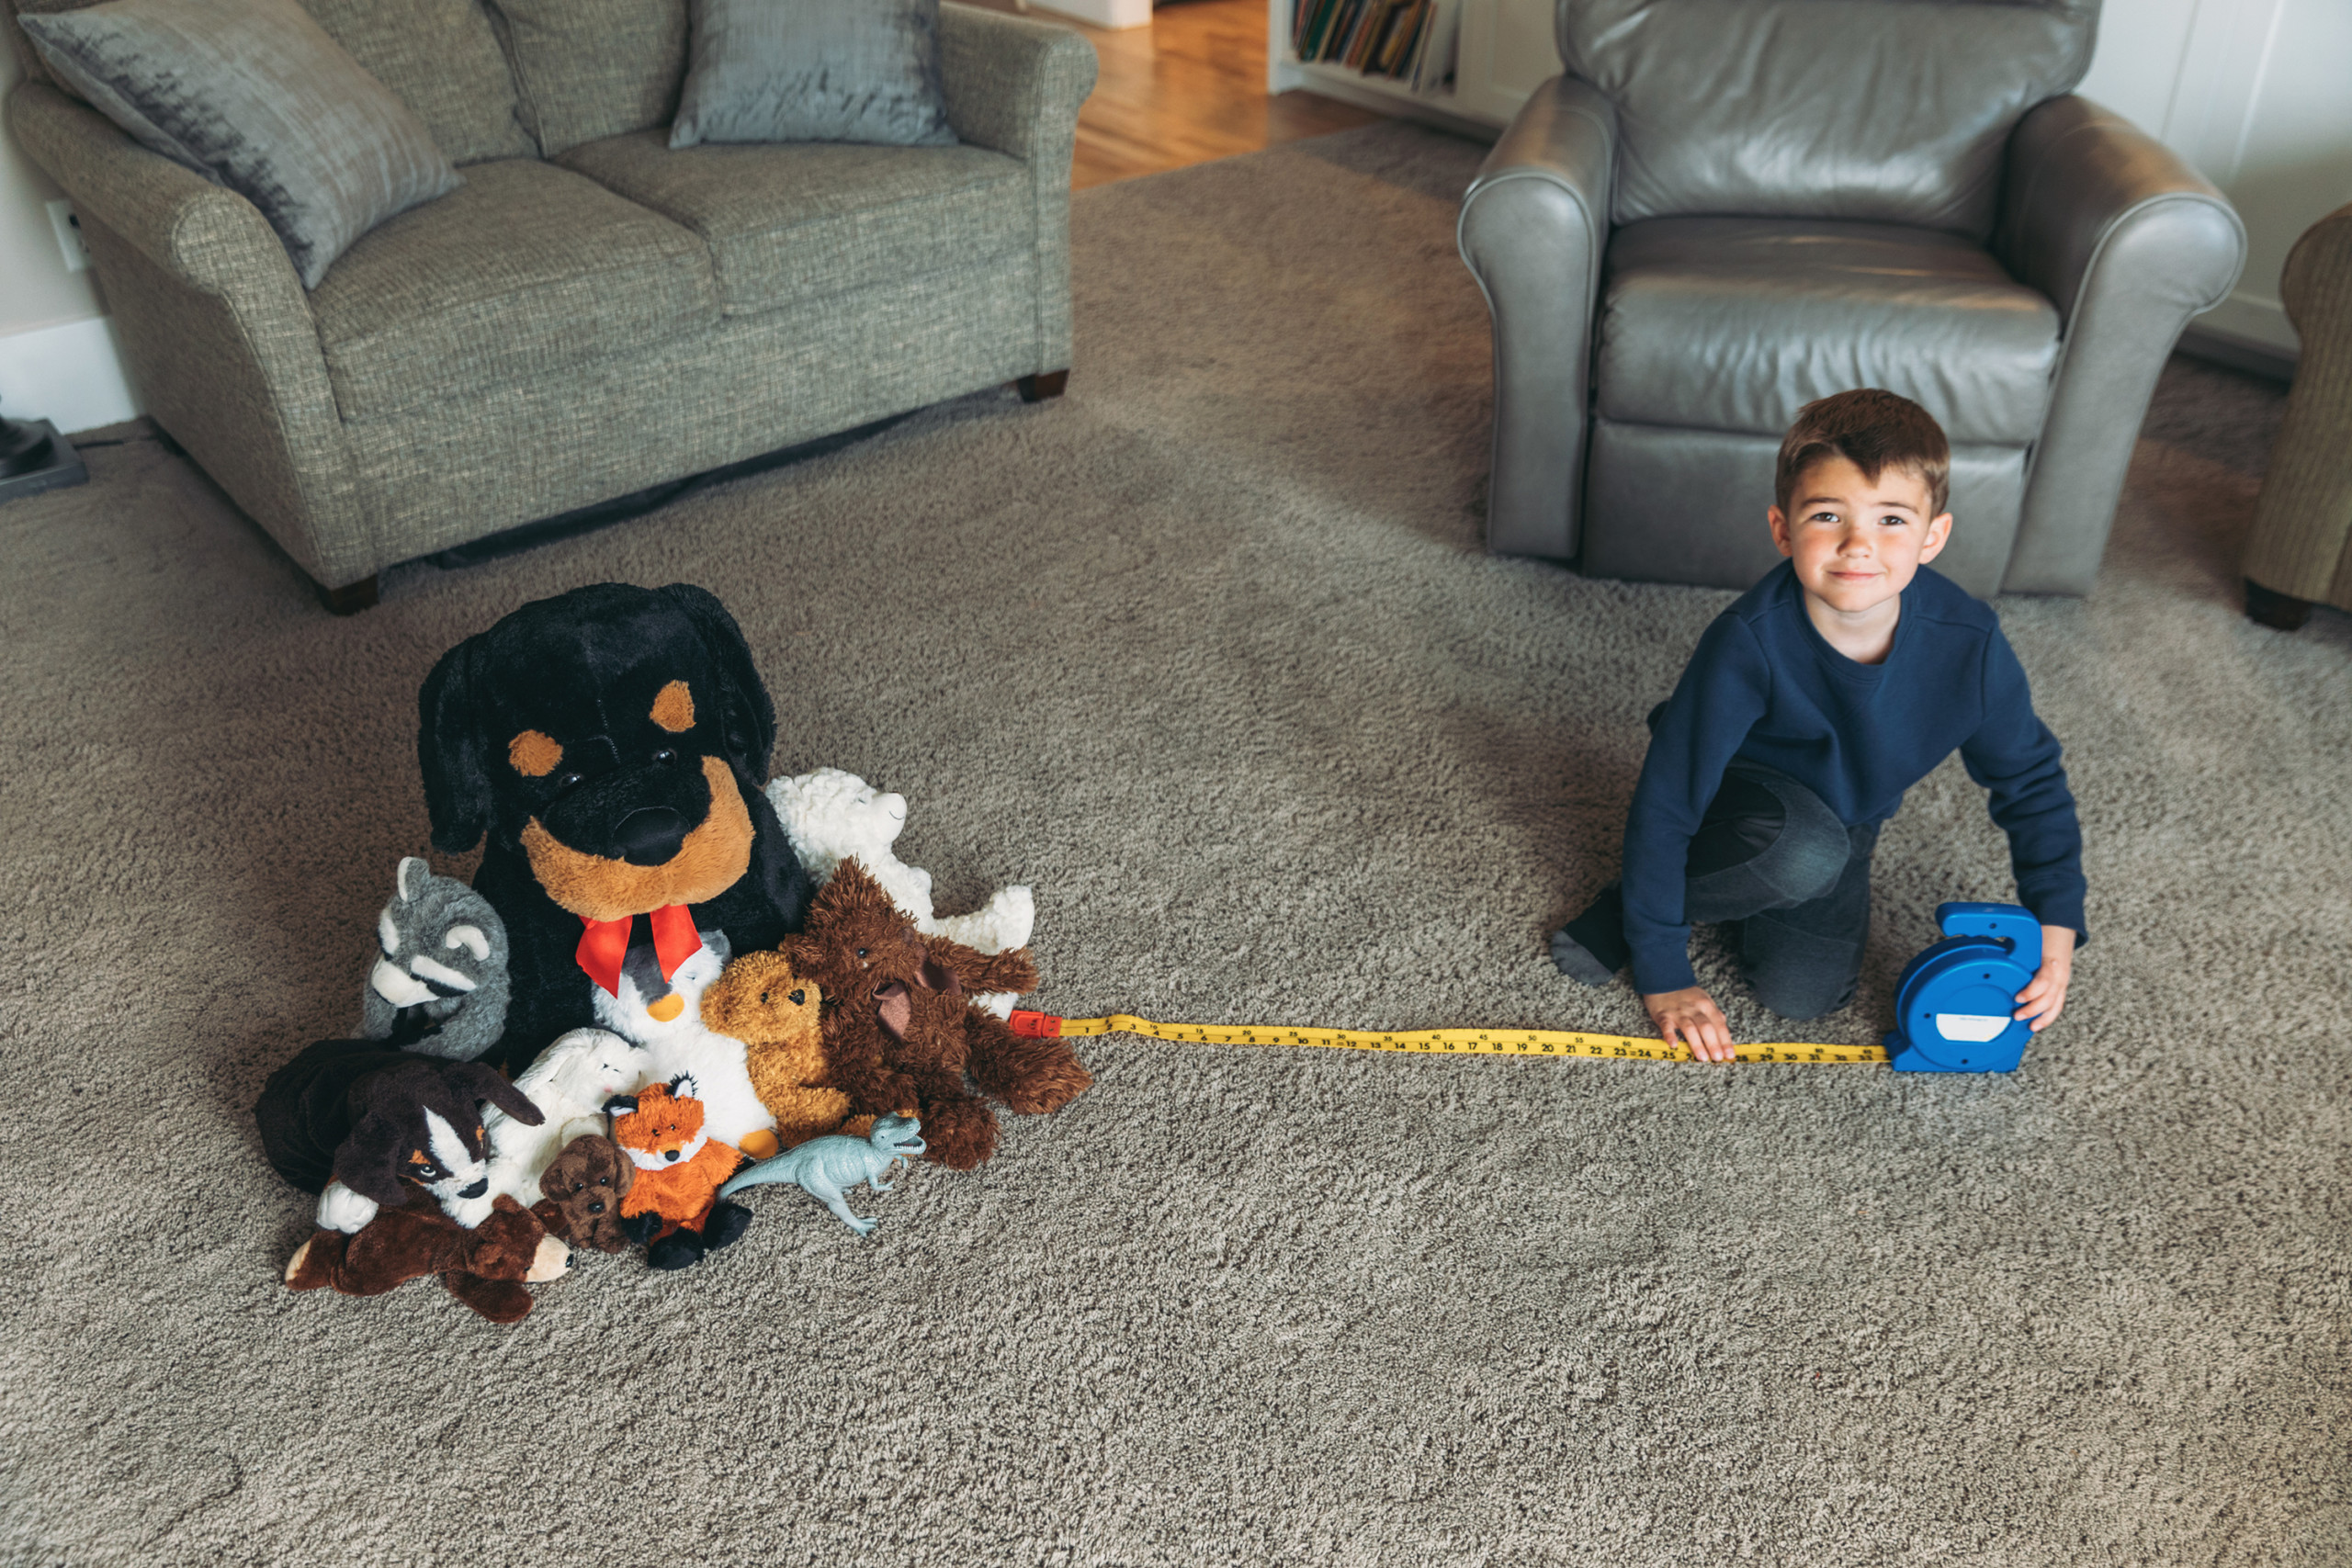 School-age child practices social distancing with stuffed animals